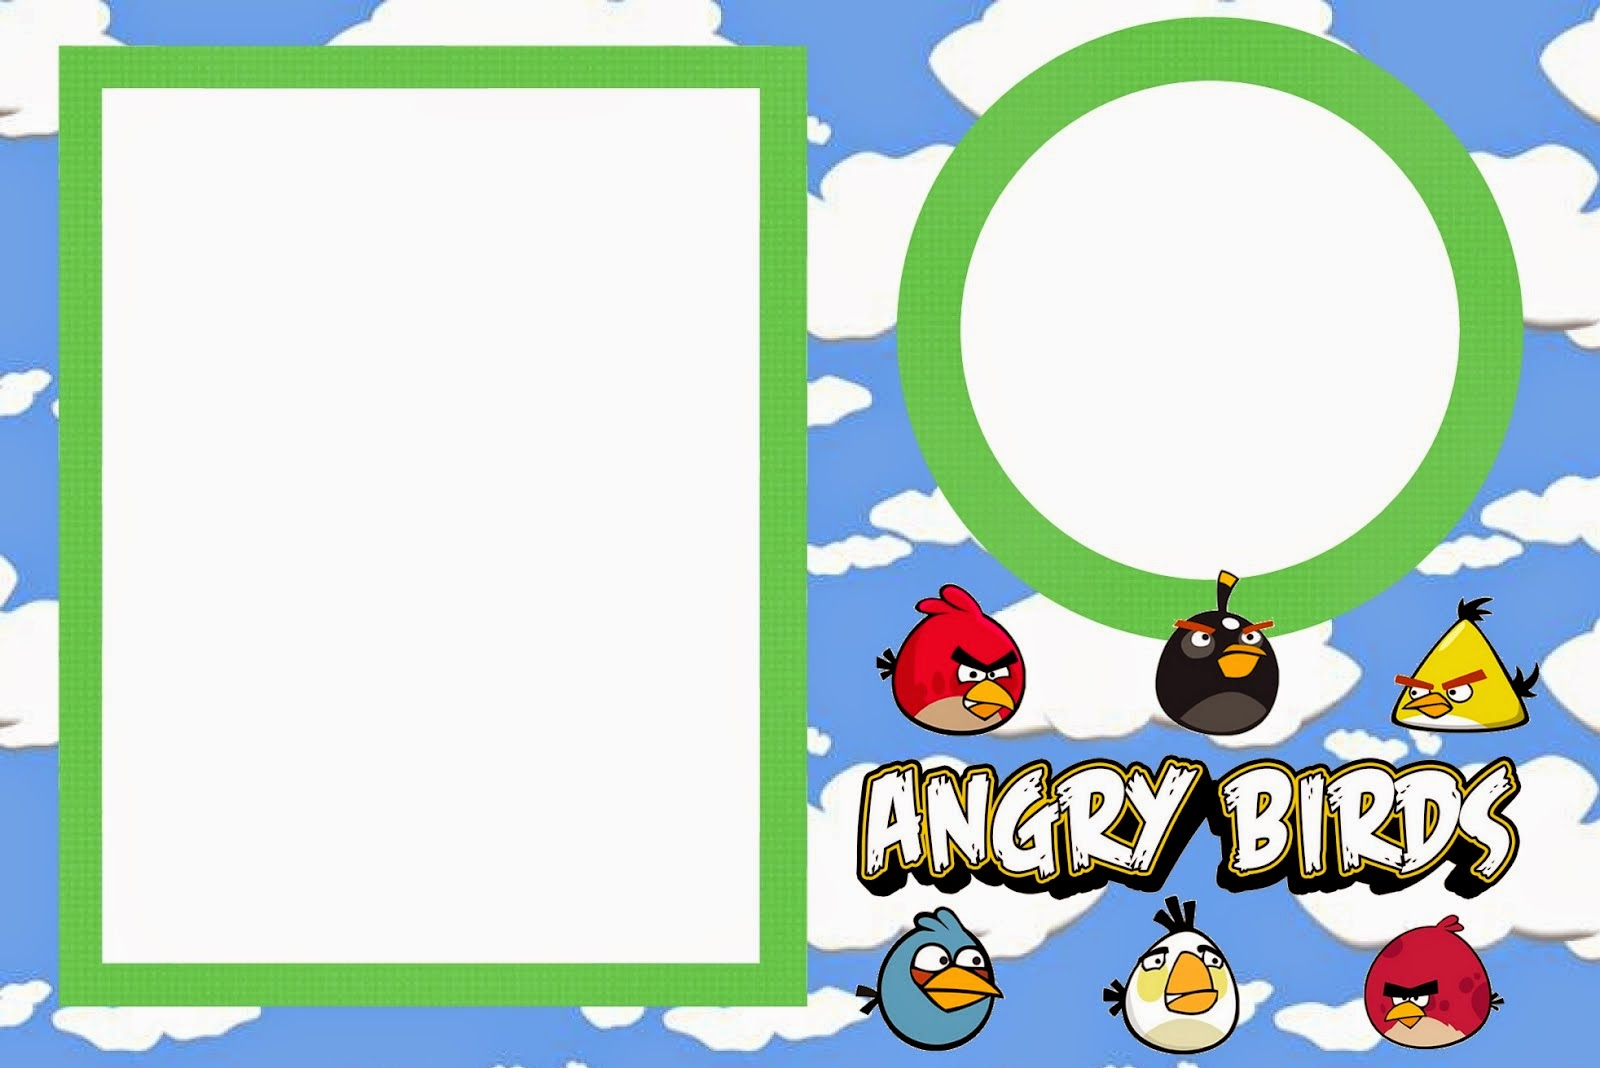 Angry Birds Invitation was good invitation template